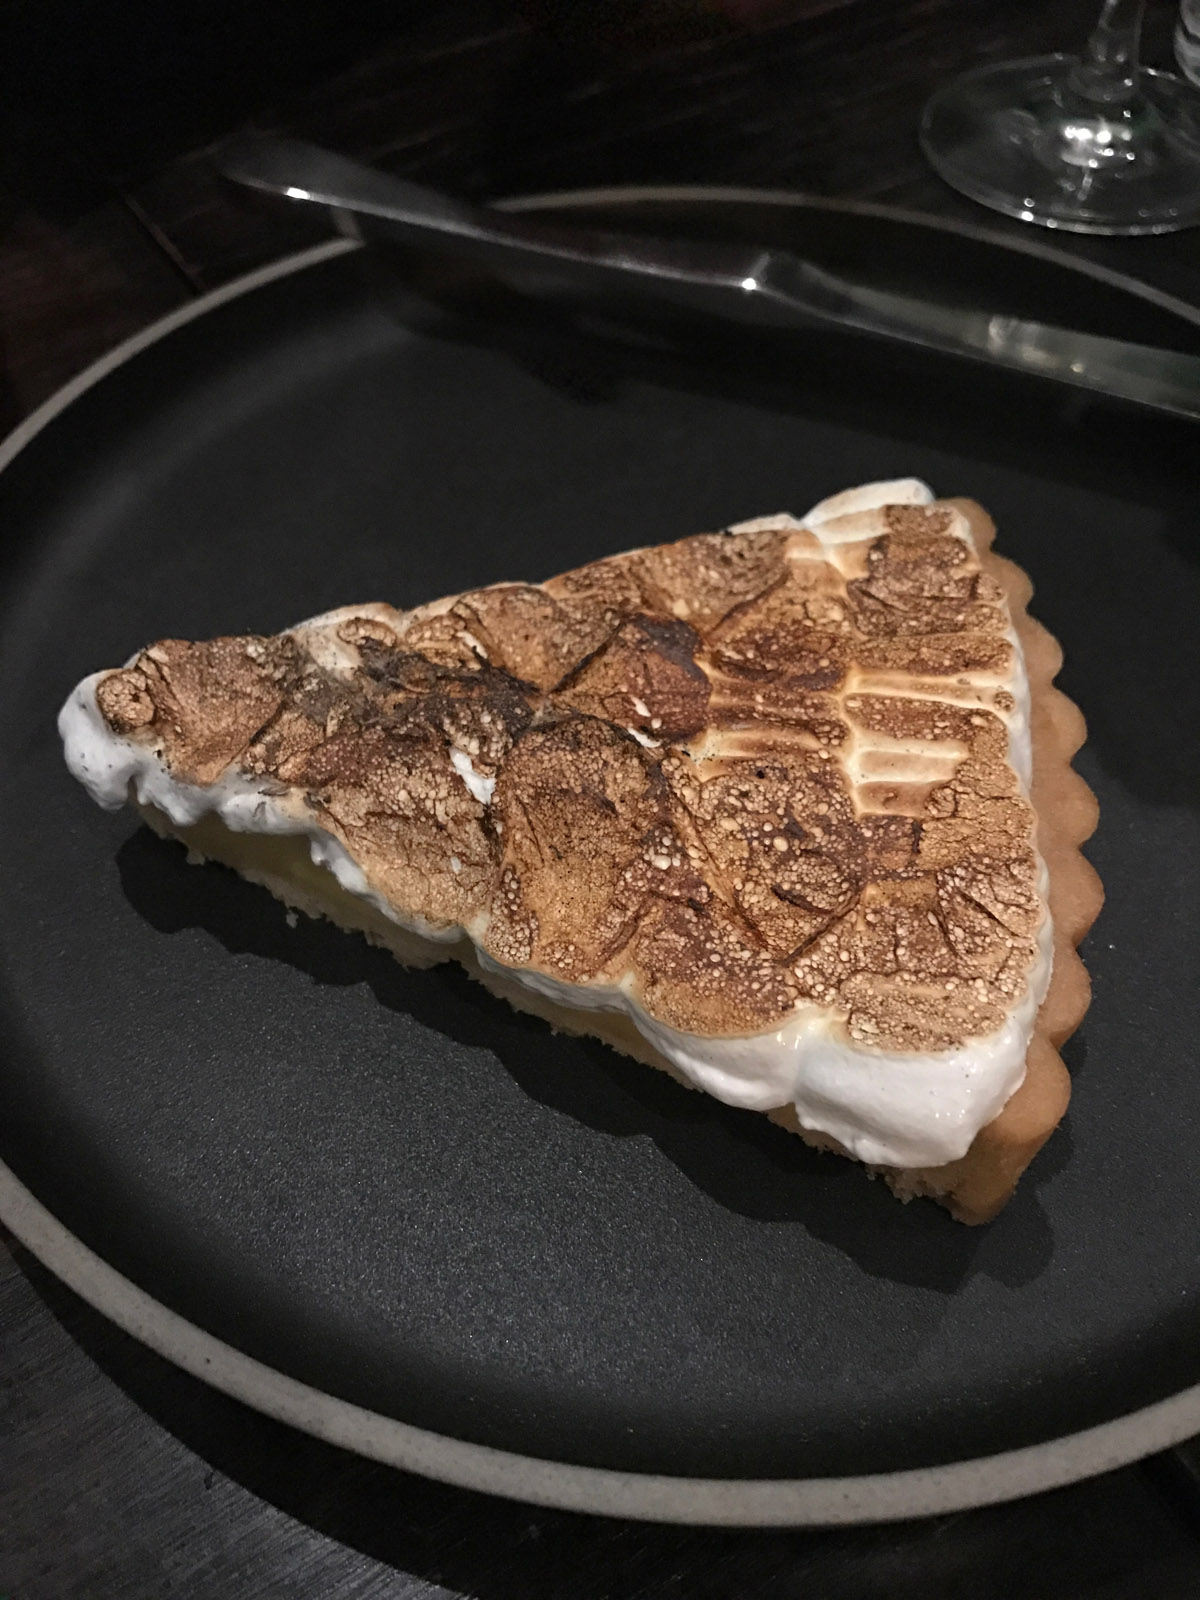 Yuzu Tart (white chocolate, burnt meringue)